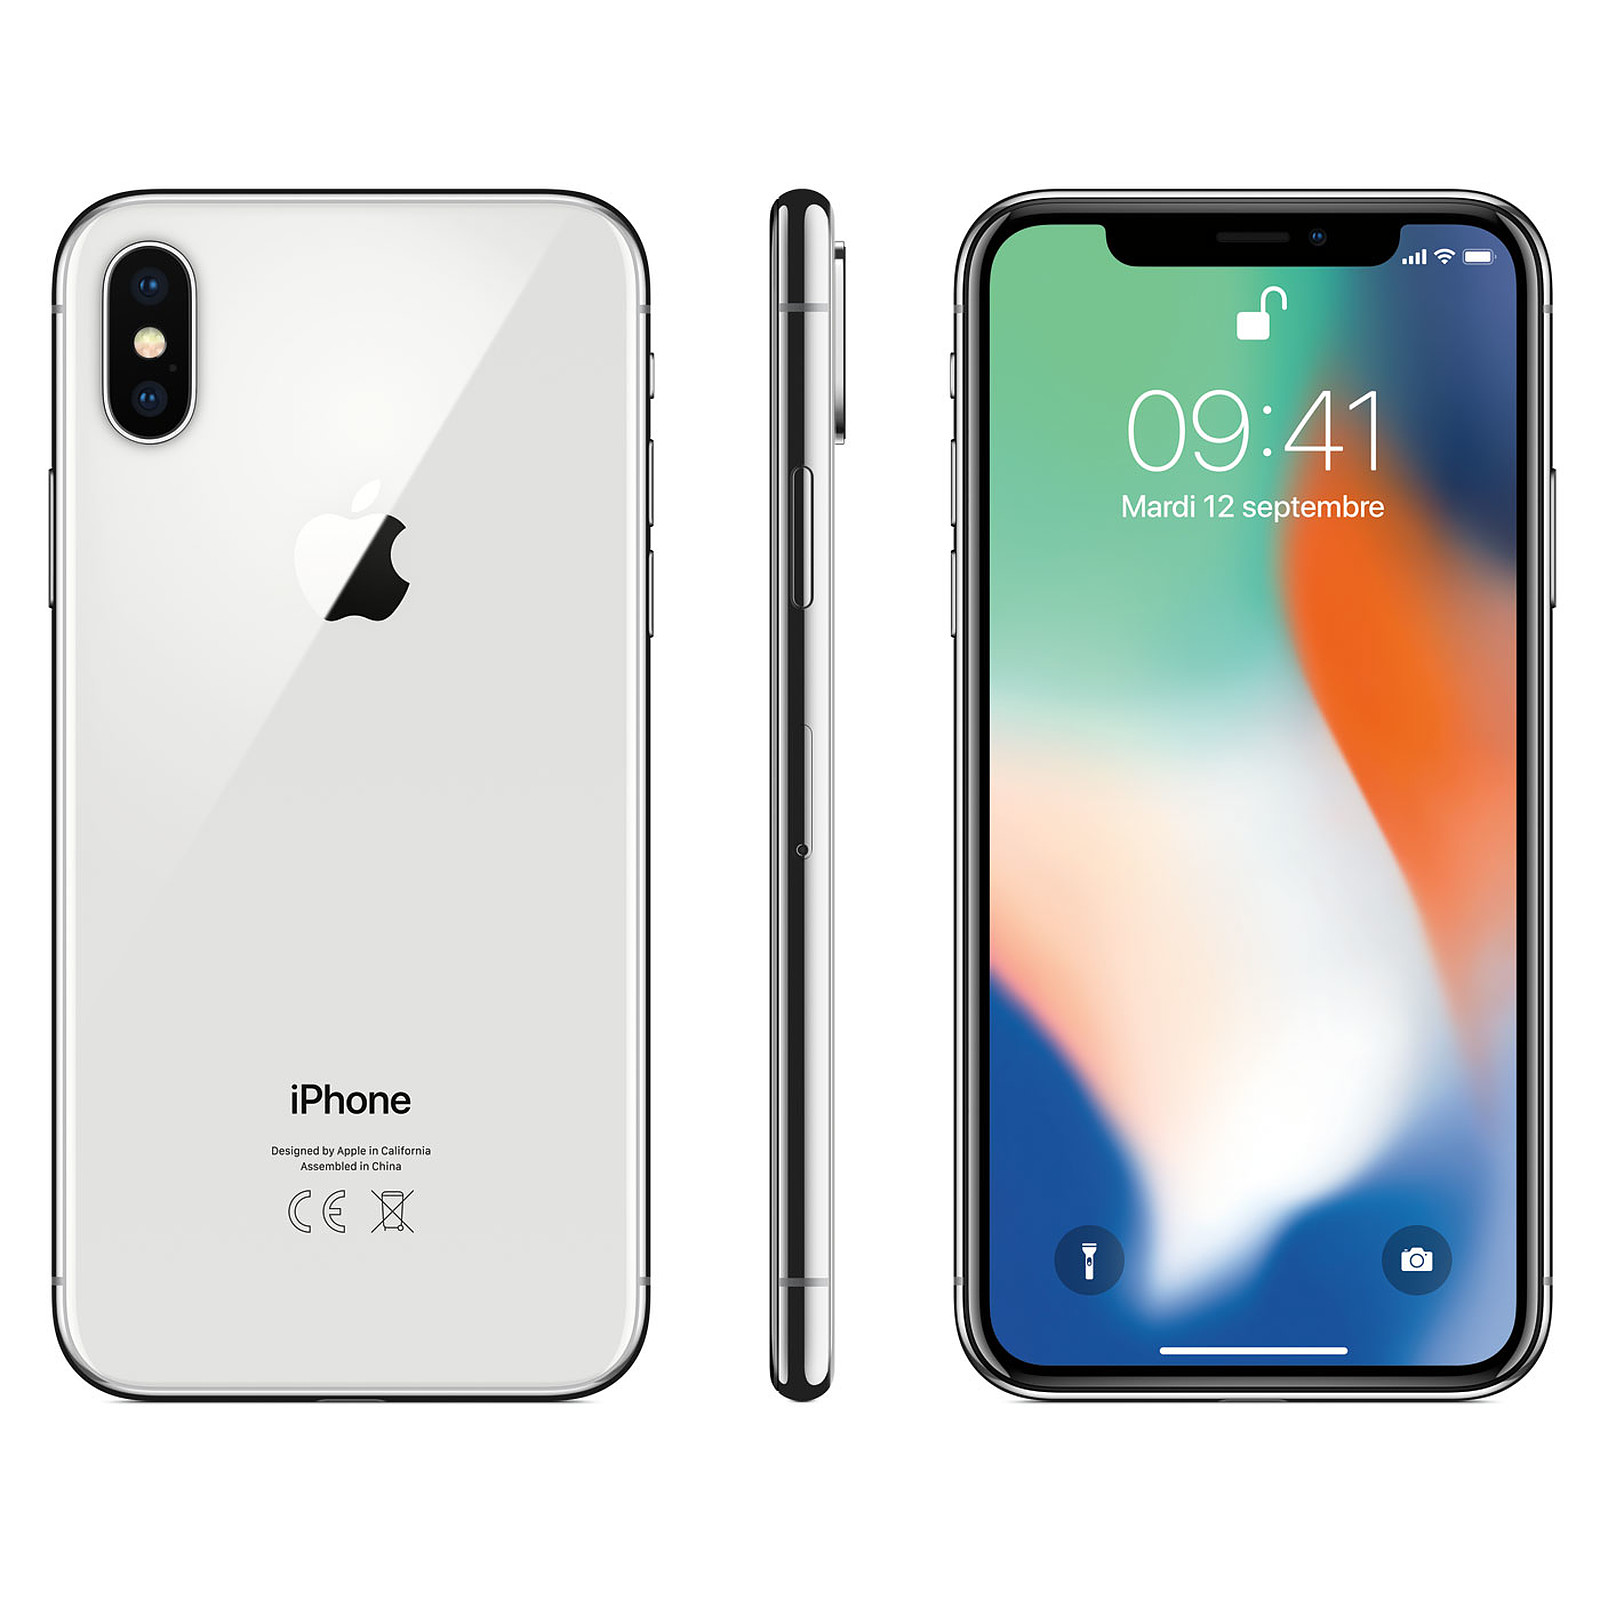 WHOLESALE ONLY- <strong>10</strong> Pieces Min Order Quality Smart Second Hand <strong>Mobile</strong> Phone - Unlocked Original Used A Grade for iPhone <strong>X</strong> 256GB